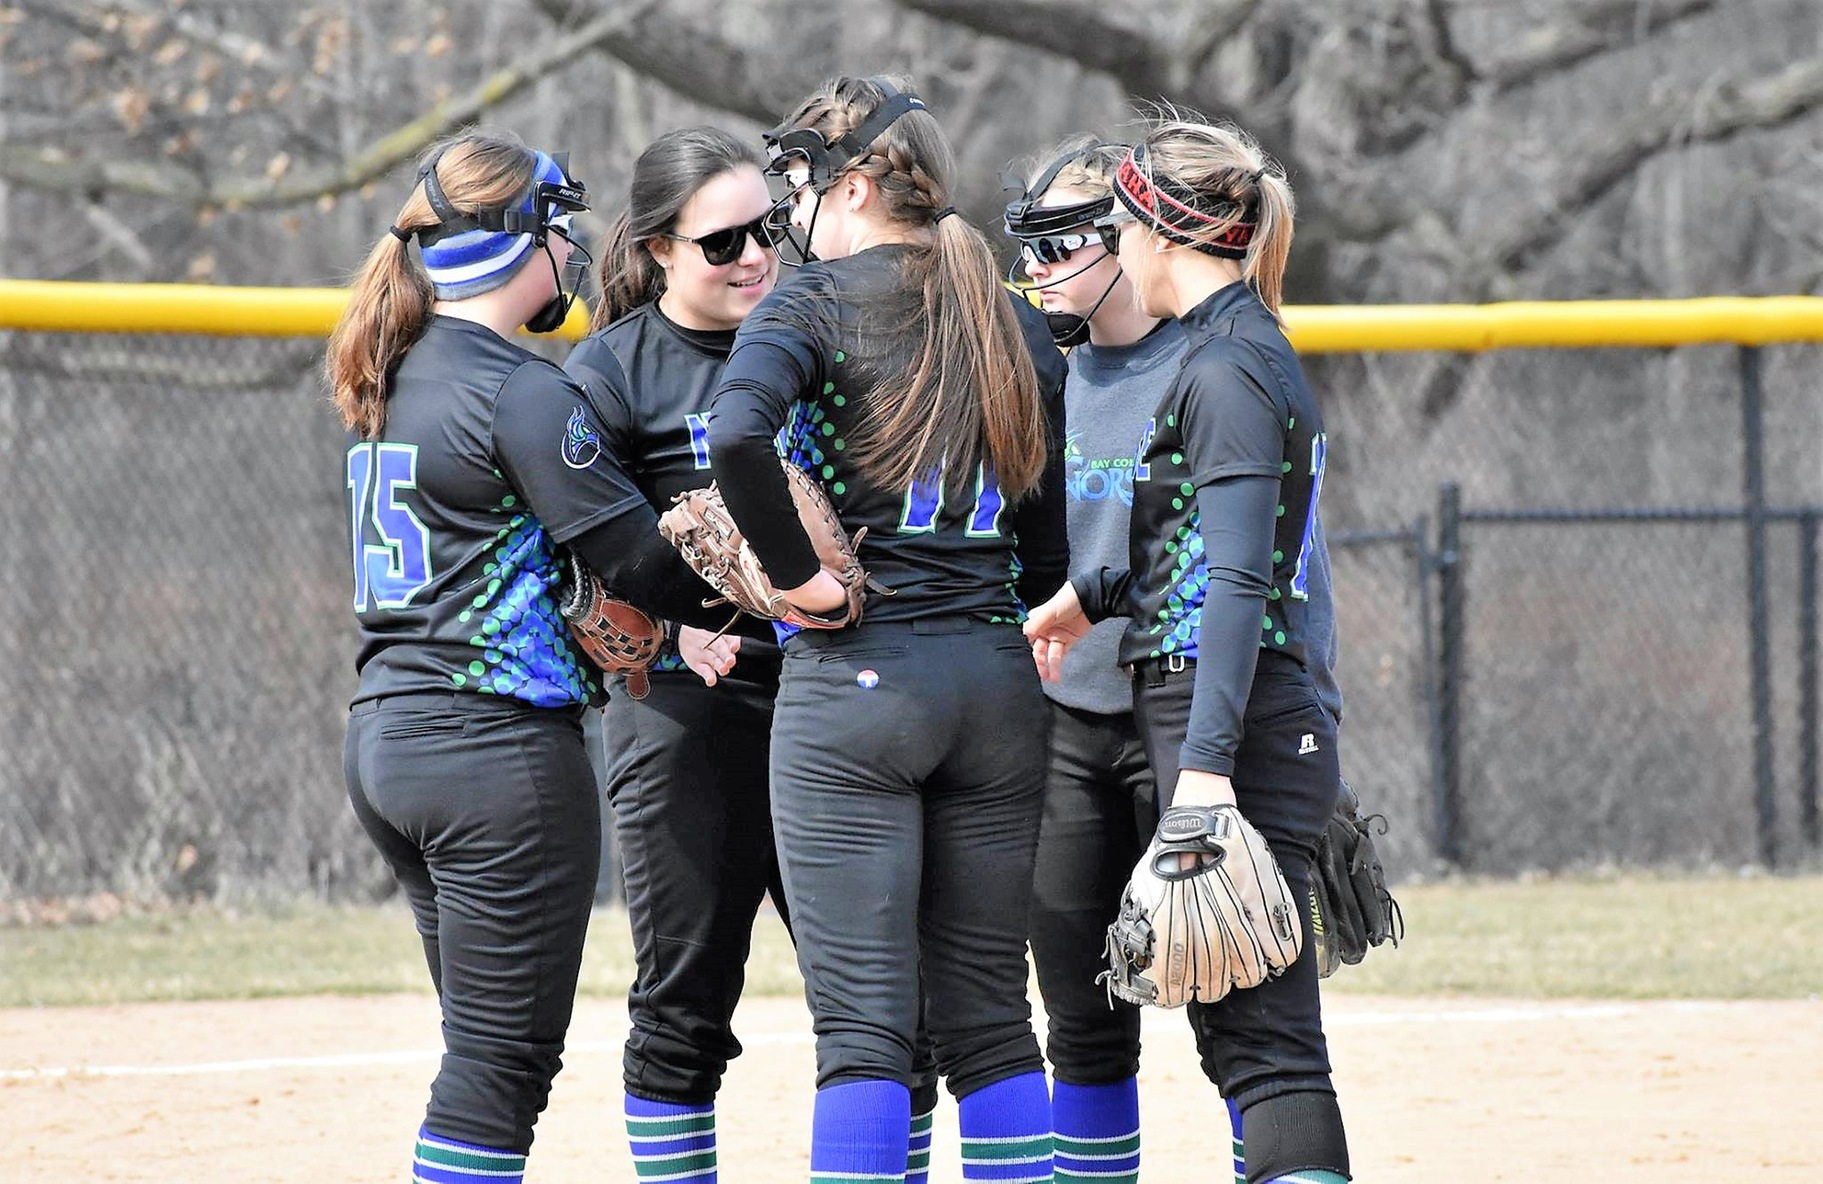 Bay Softball Bitten by Bobcats